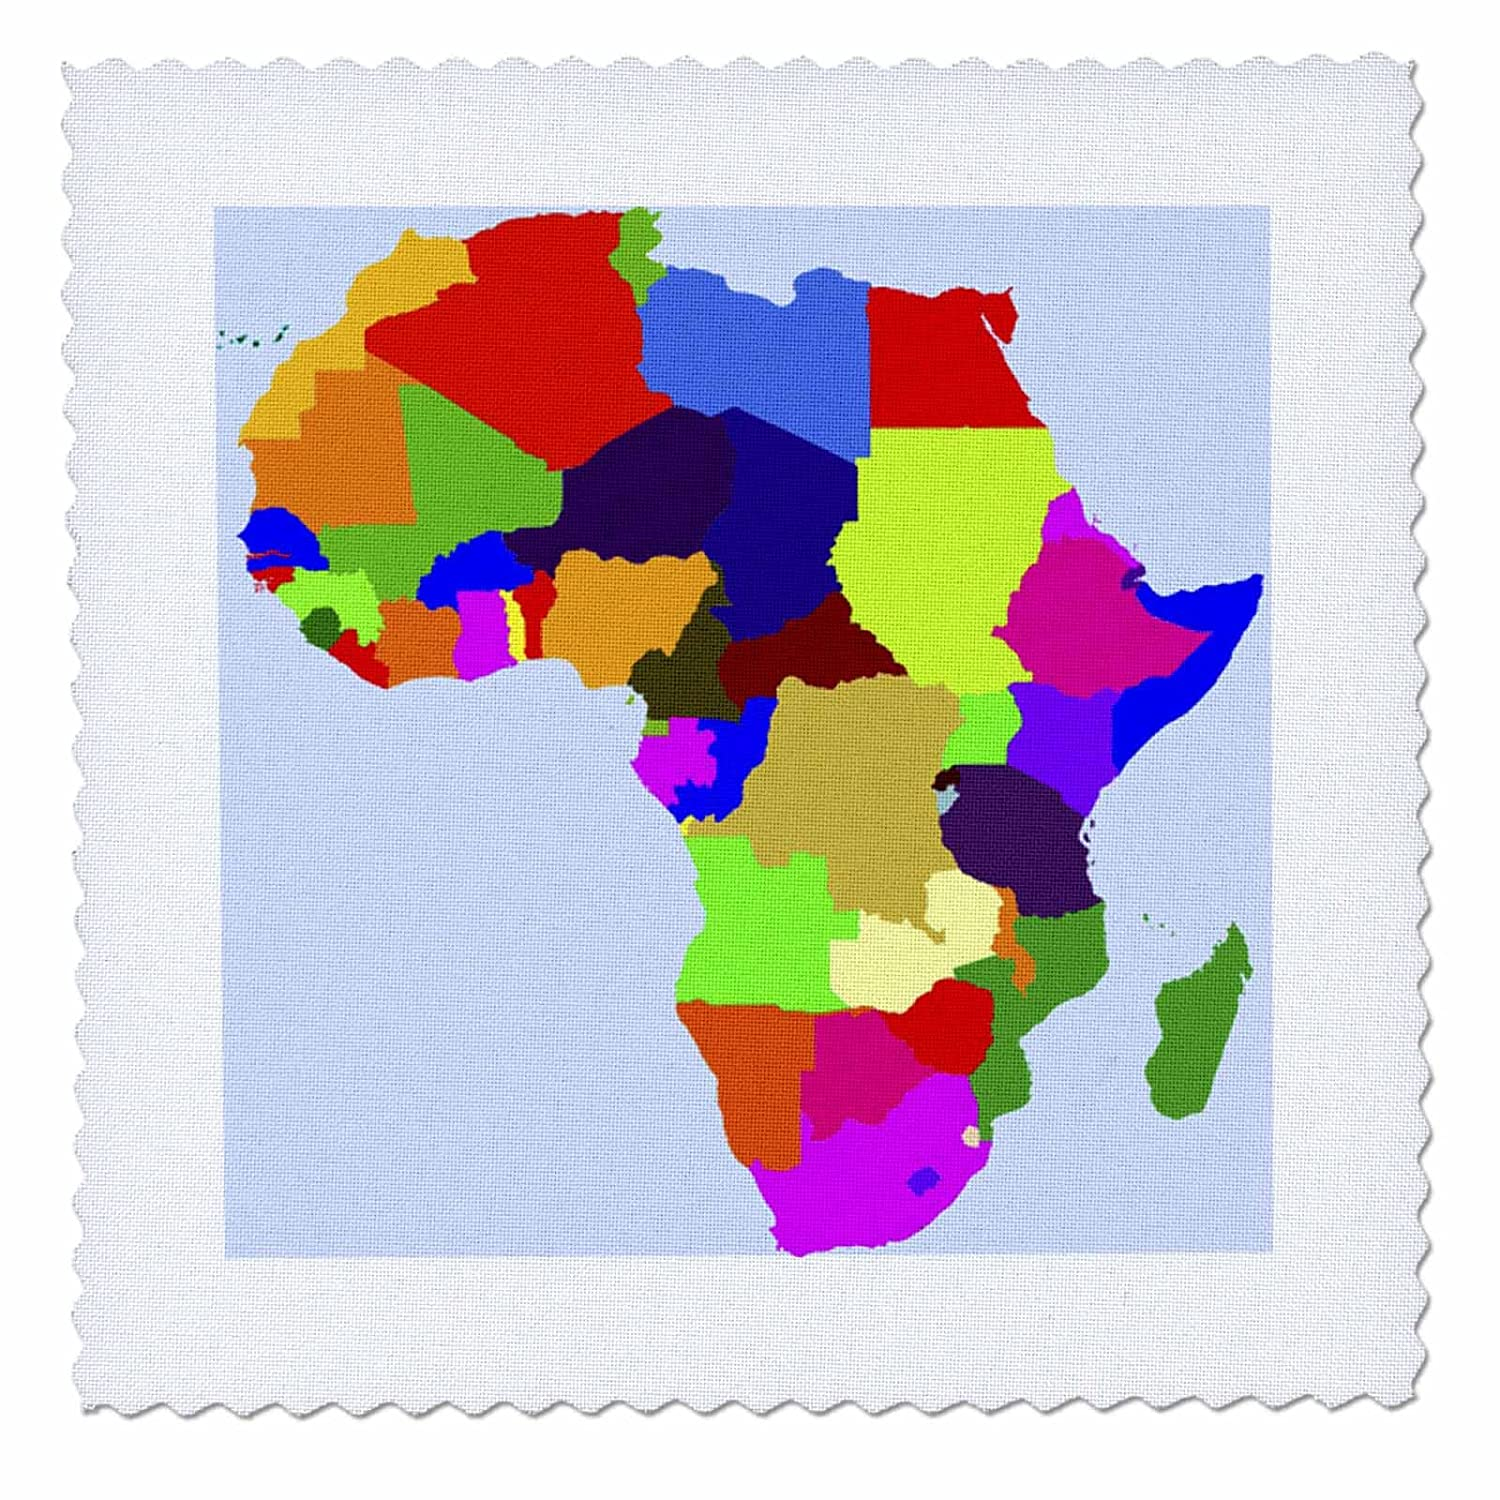 Amazon.com: 3dRose qs_50263_3 World Map in Vivid Color Quilt ... on map print, map in europe, map art projects, map with mountains, map duvet cover, map quotes, map party decor, map mobile, map project ideas, map jewelry, map with states, map recipe, map fabric, map bedding, map ne usa, map with compass, map design, map quip, map skirt, map crib set,